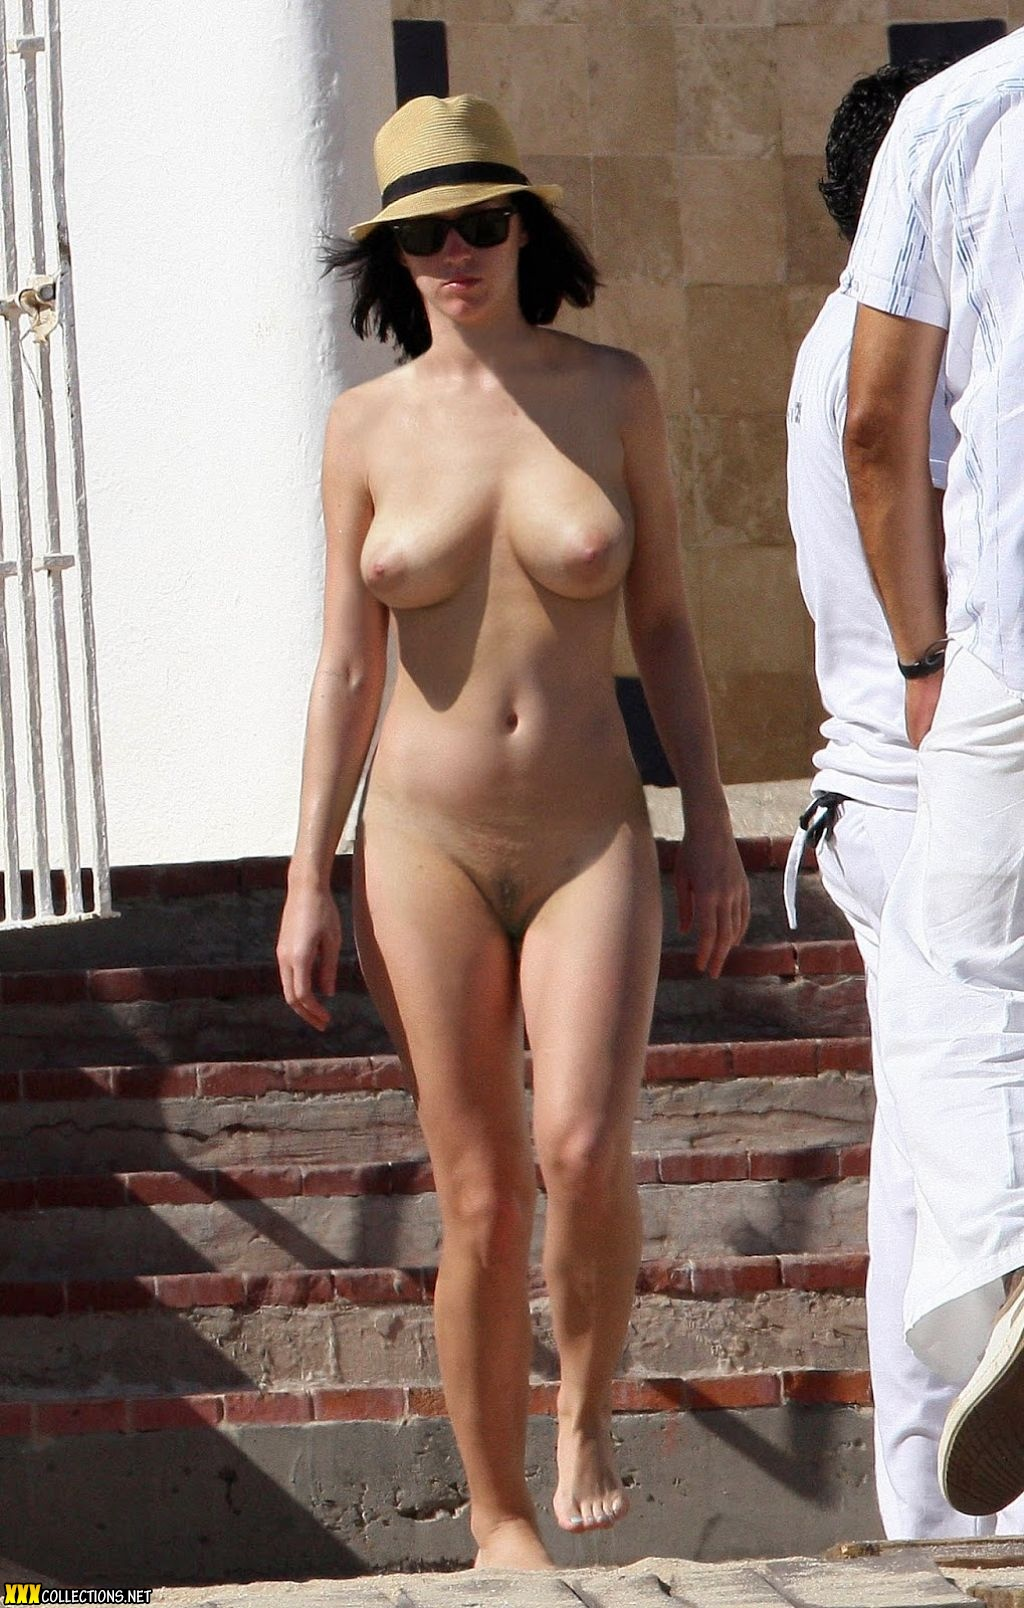 Katy Perry Wird Nackt foto 1